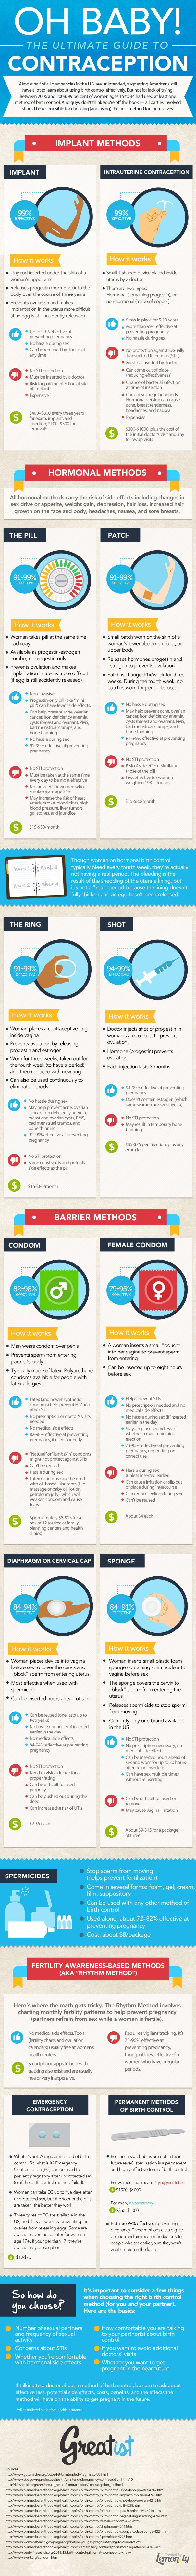 The Ultimate Guide to #Contraception